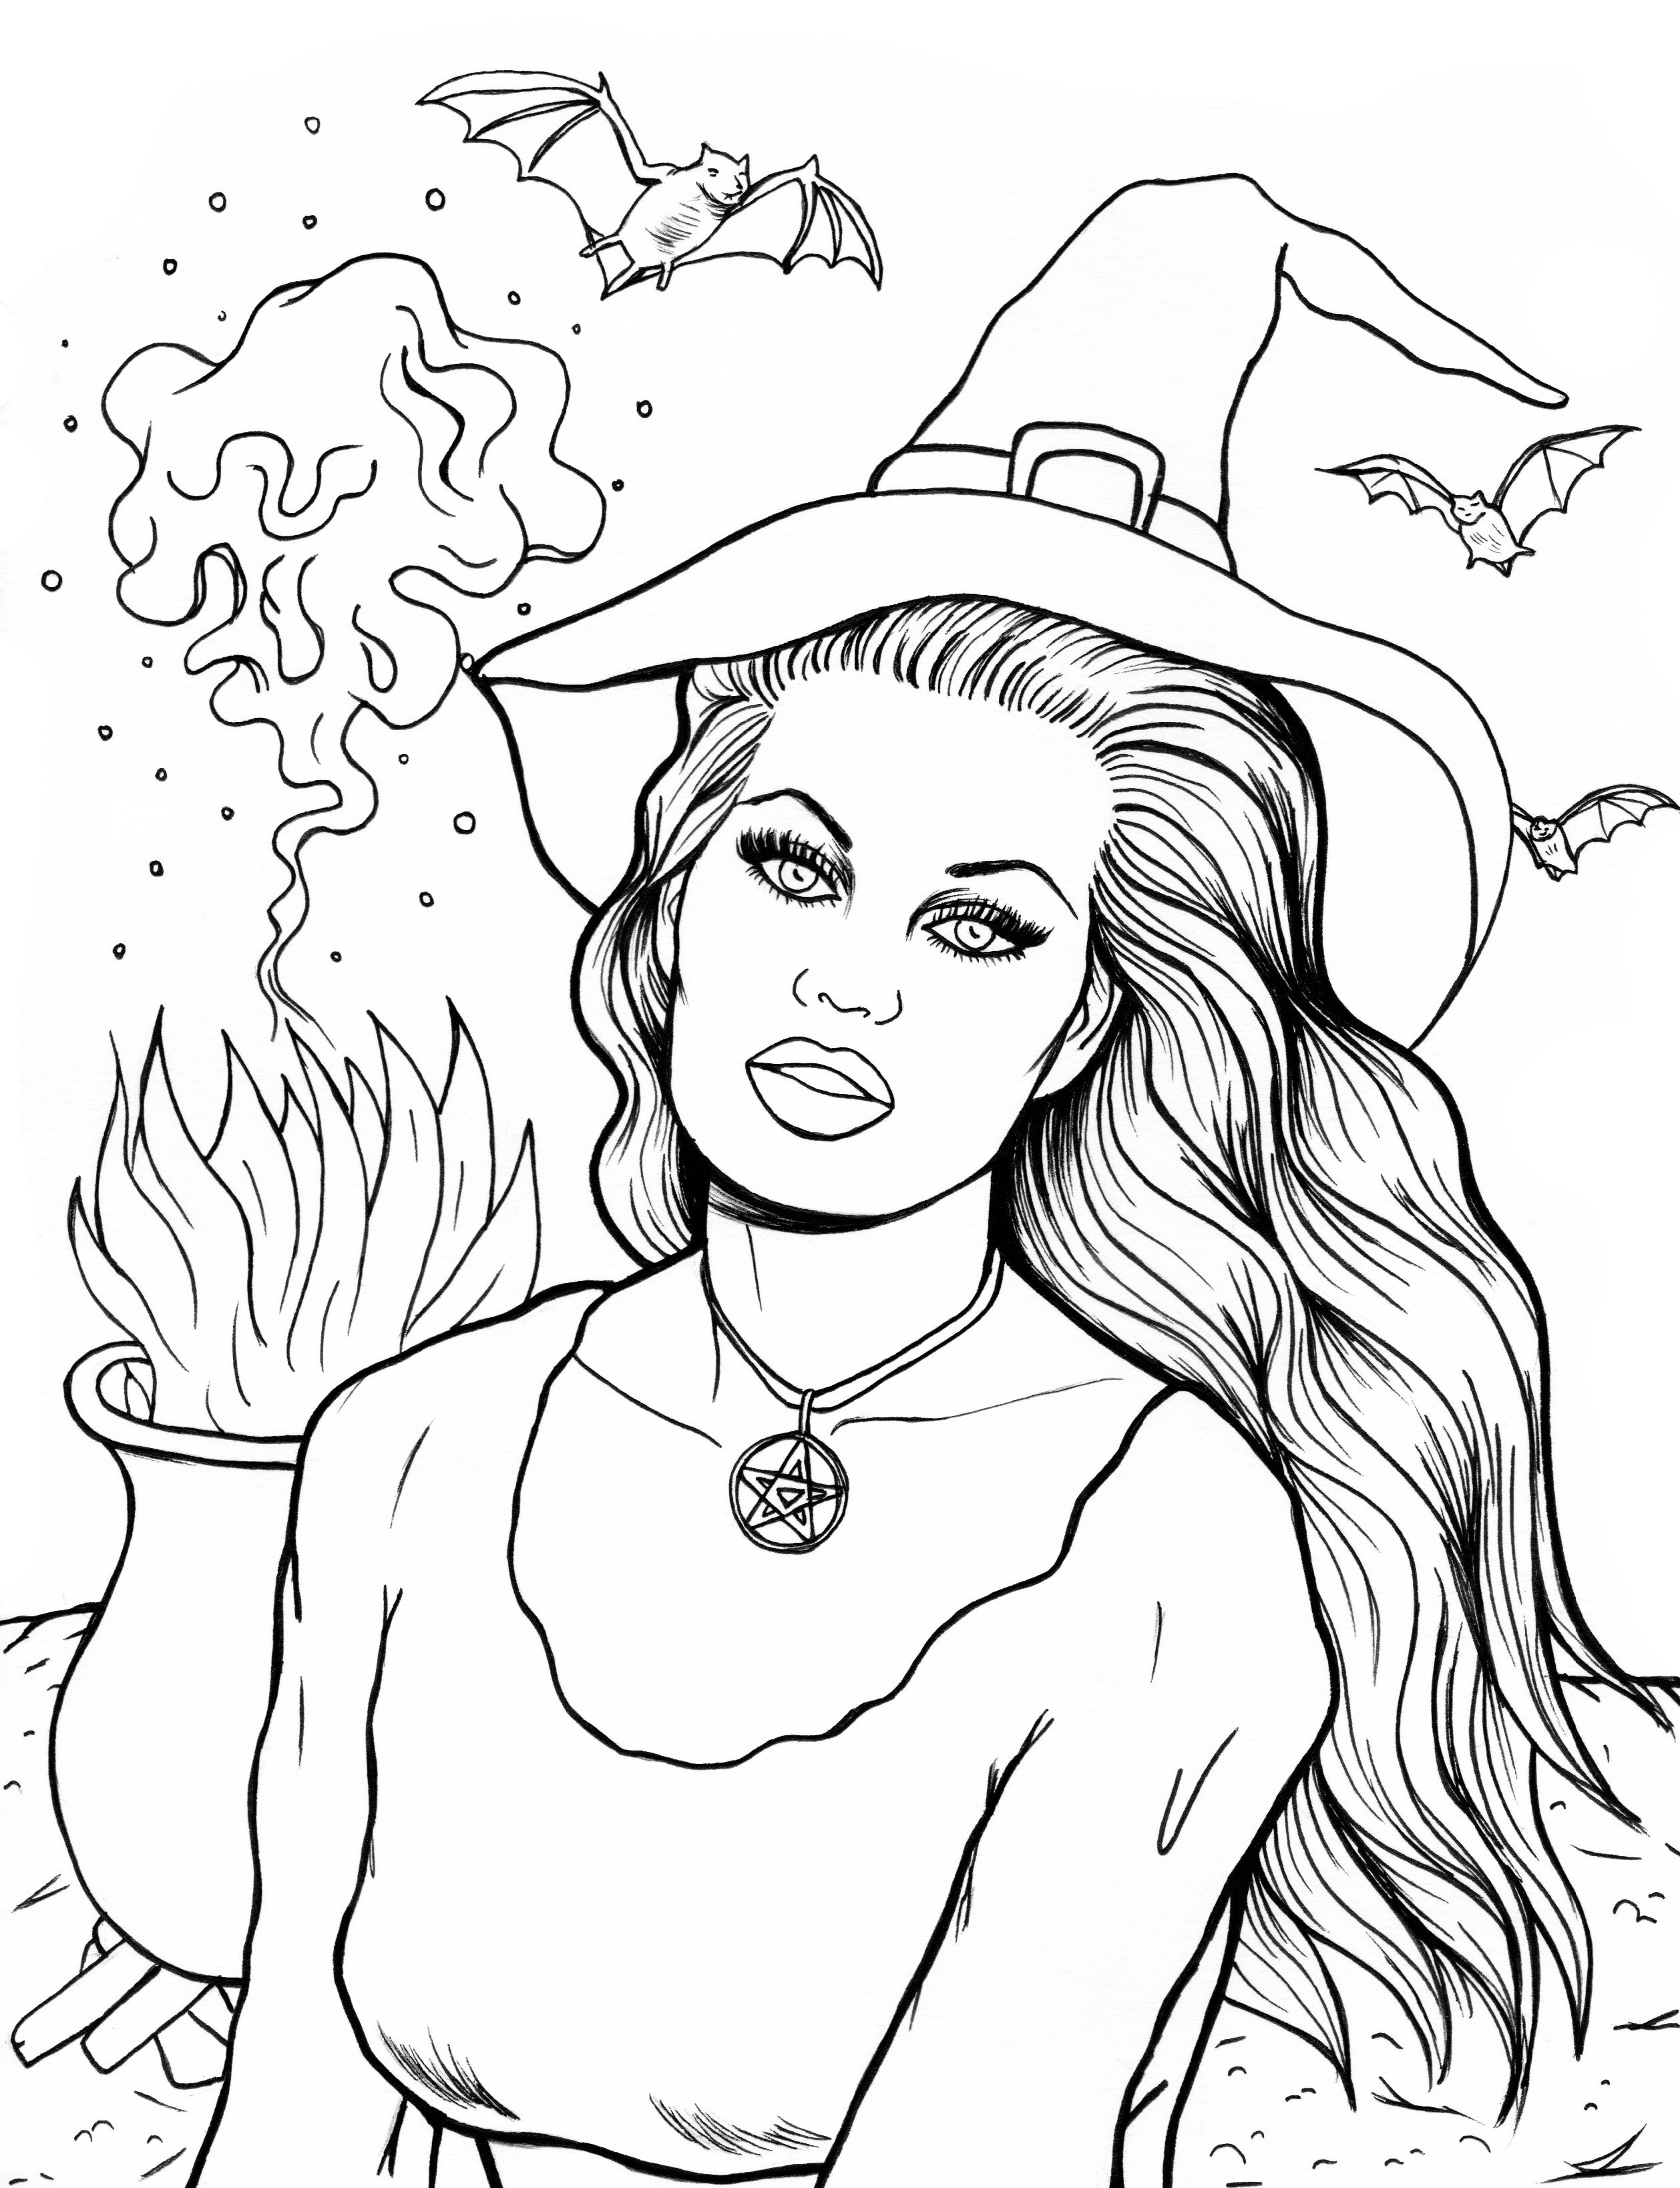 haloween coloring pages halloween coloring pages haloween pages coloring